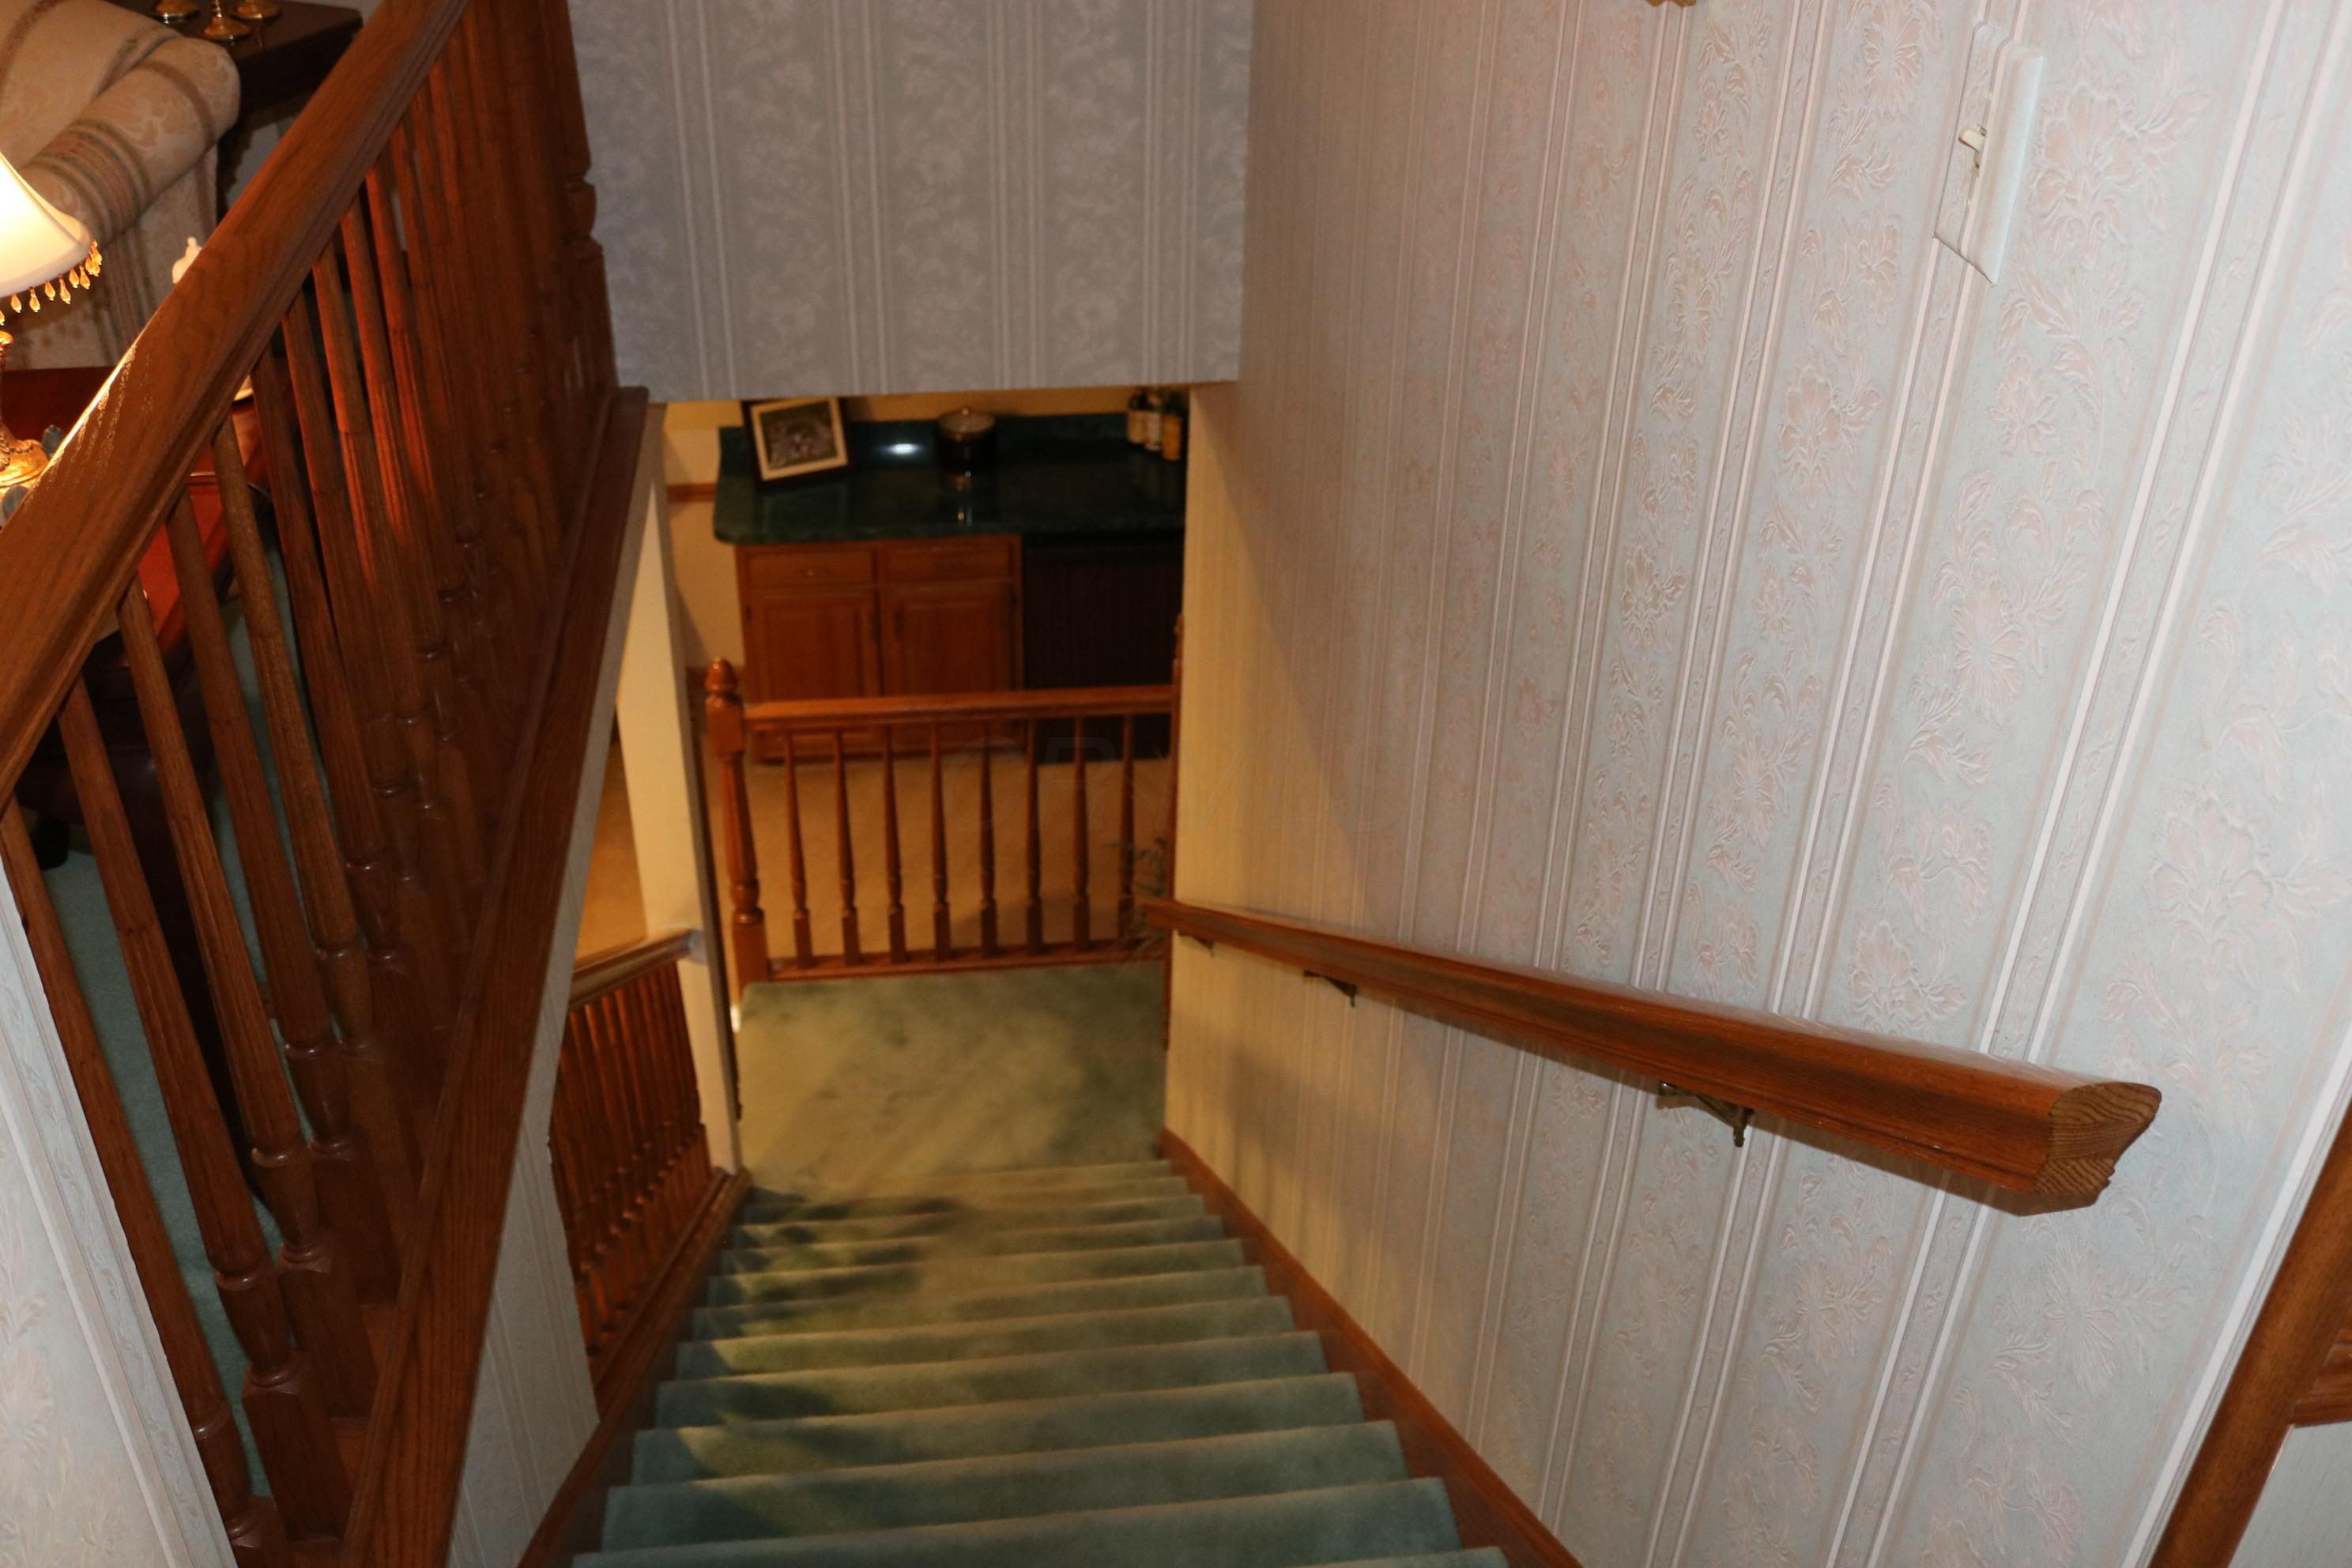 5714 Barry Trace, Dublin, Ohio 43017, 2 Bedrooms Bedrooms, ,3 BathroomsBathrooms,Residential,For Sale,Barry Trace,220039892